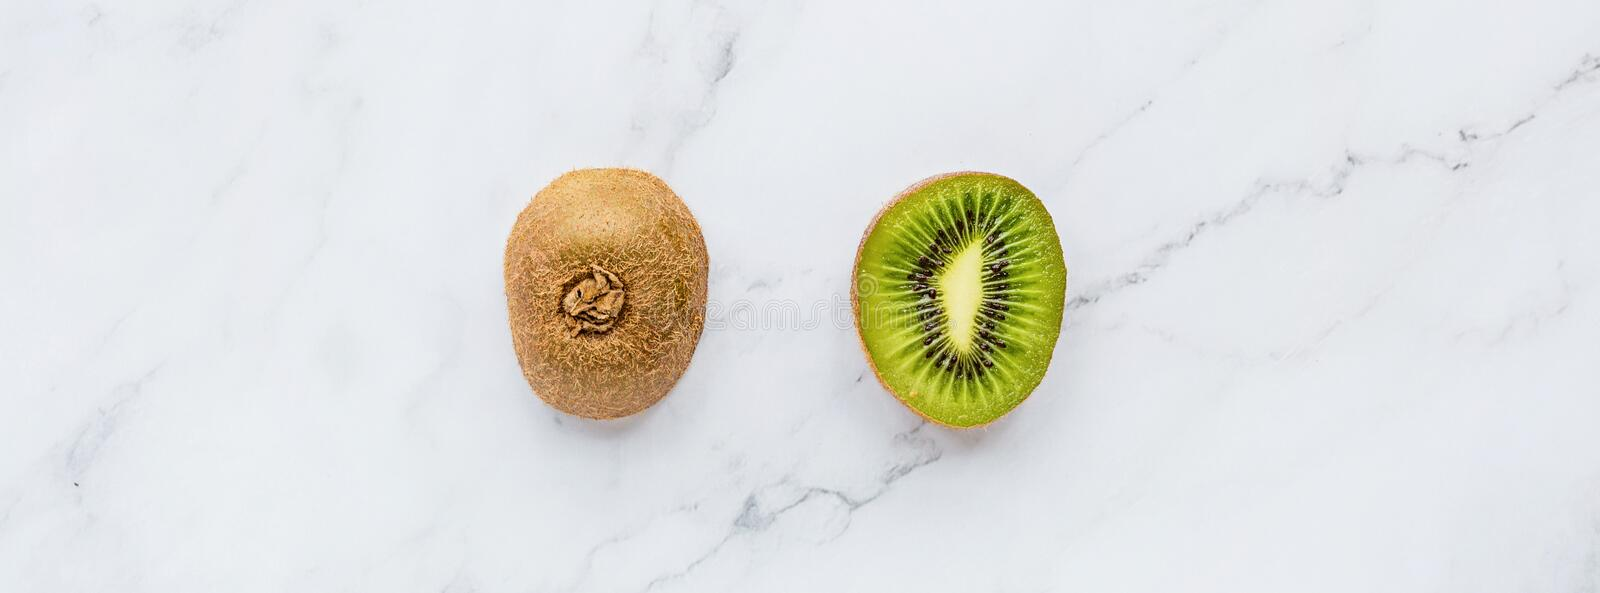 Creative layout made of fresh kiwi on white marble background. Tropical flat lay. Food concept. Mockup, top view, place for text, royalty free stock photo